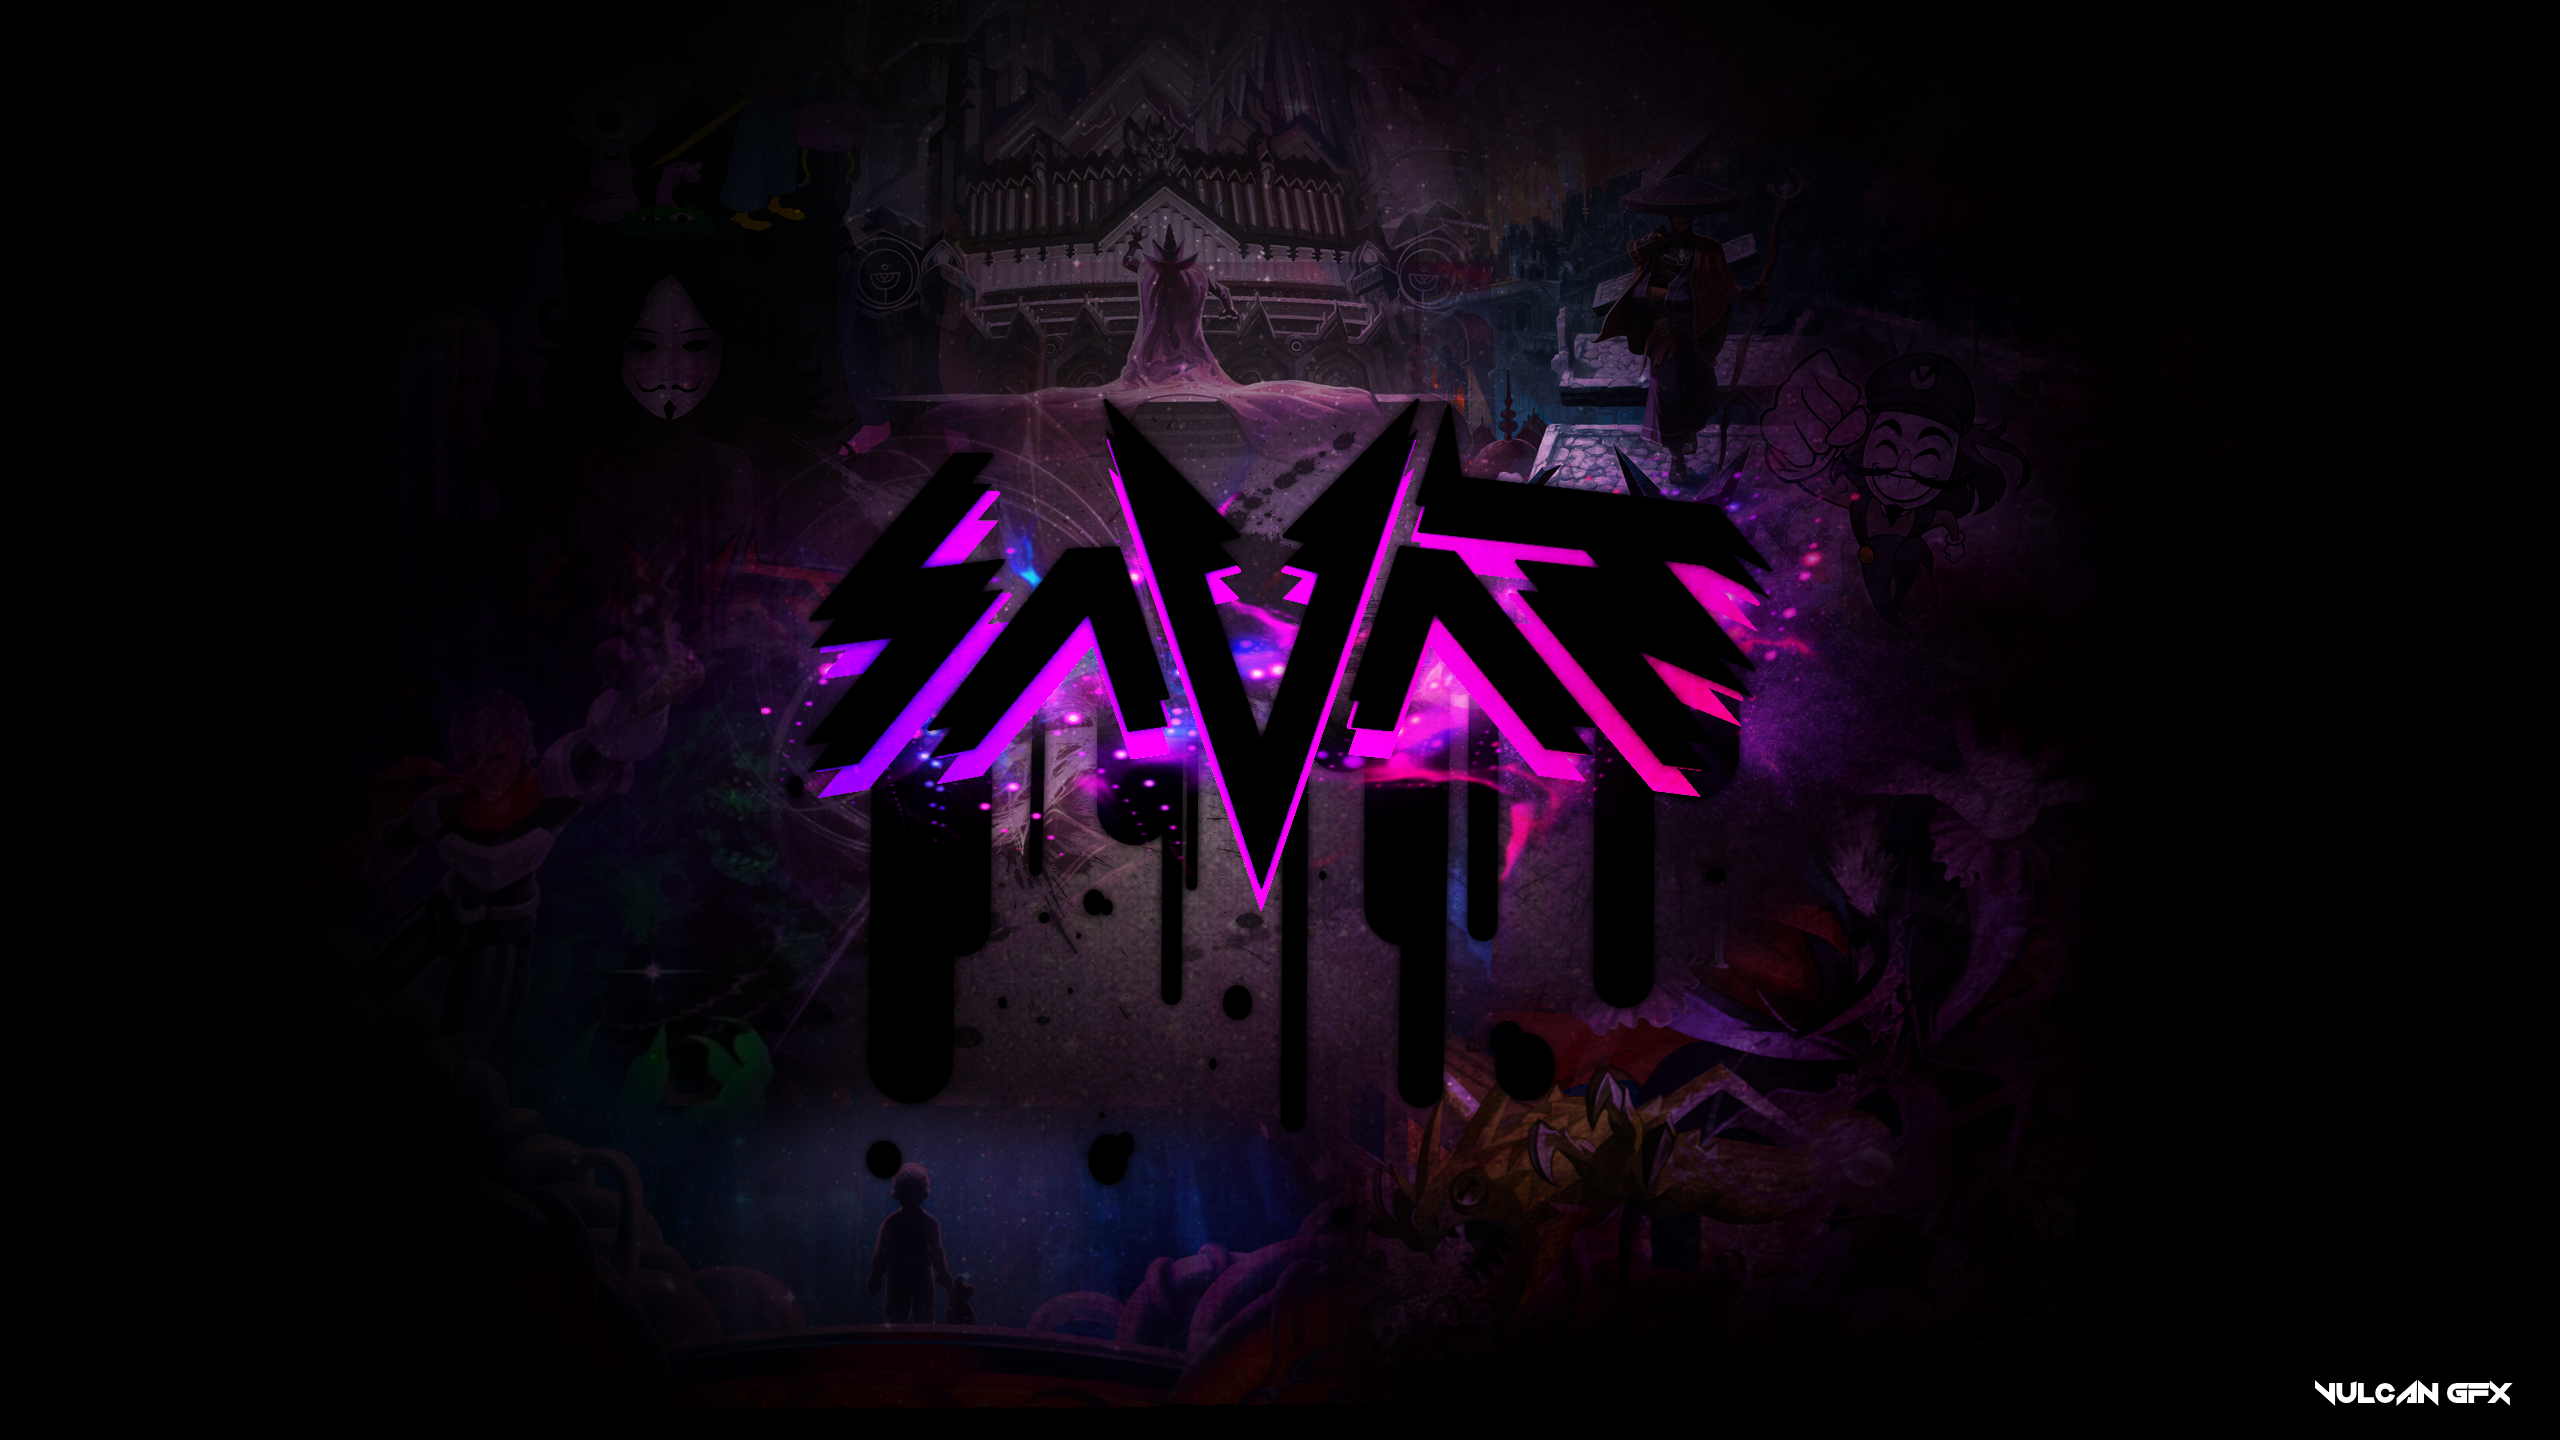 Savant Fan Wallpaper